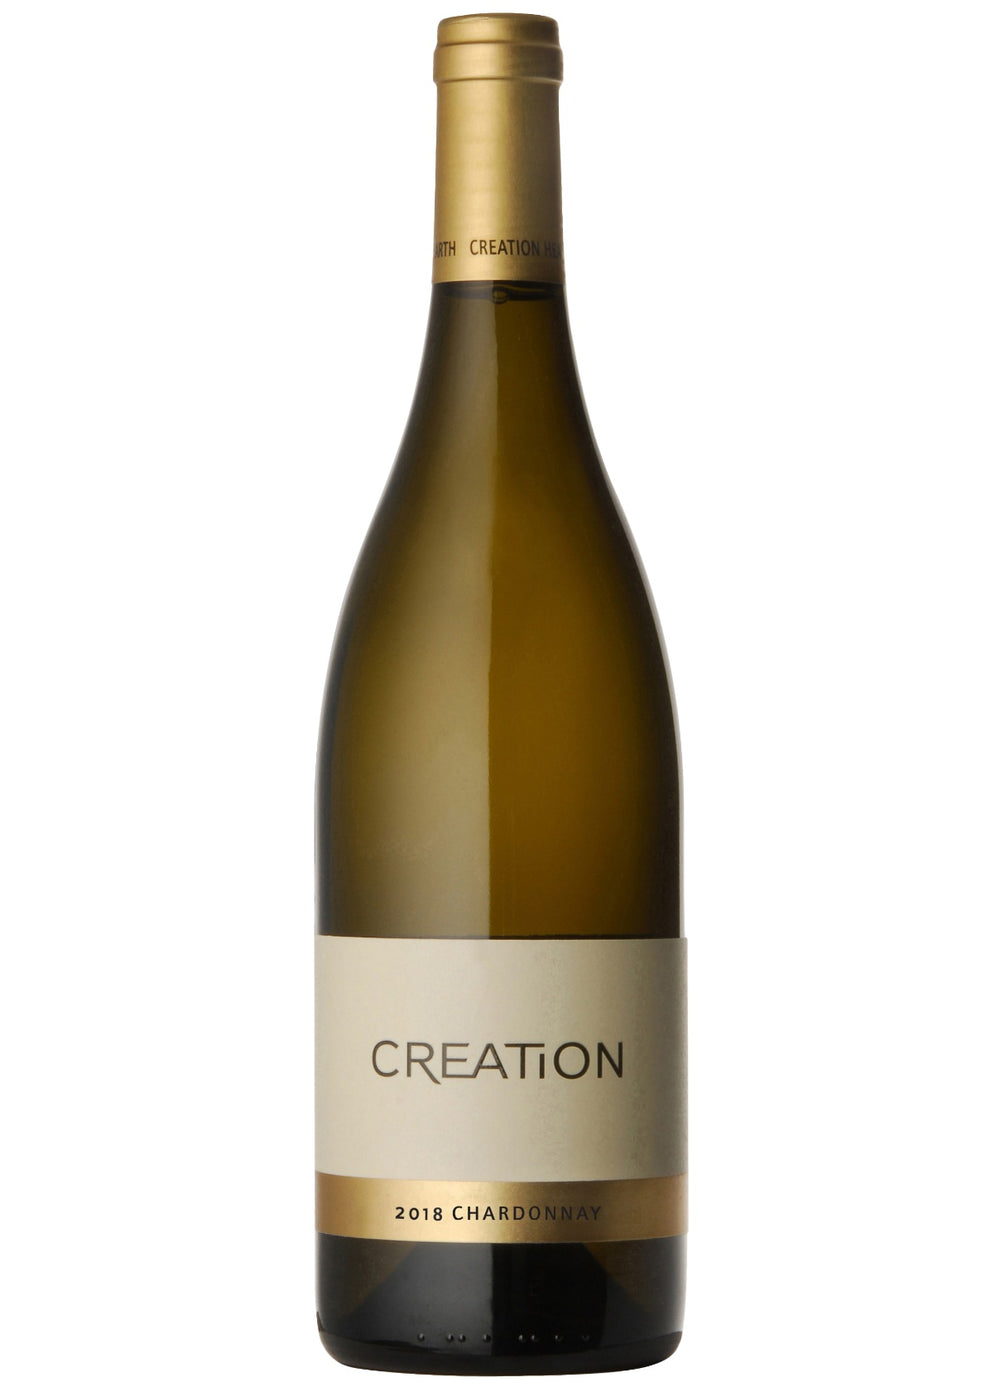 Creation - Chardonnay 2018